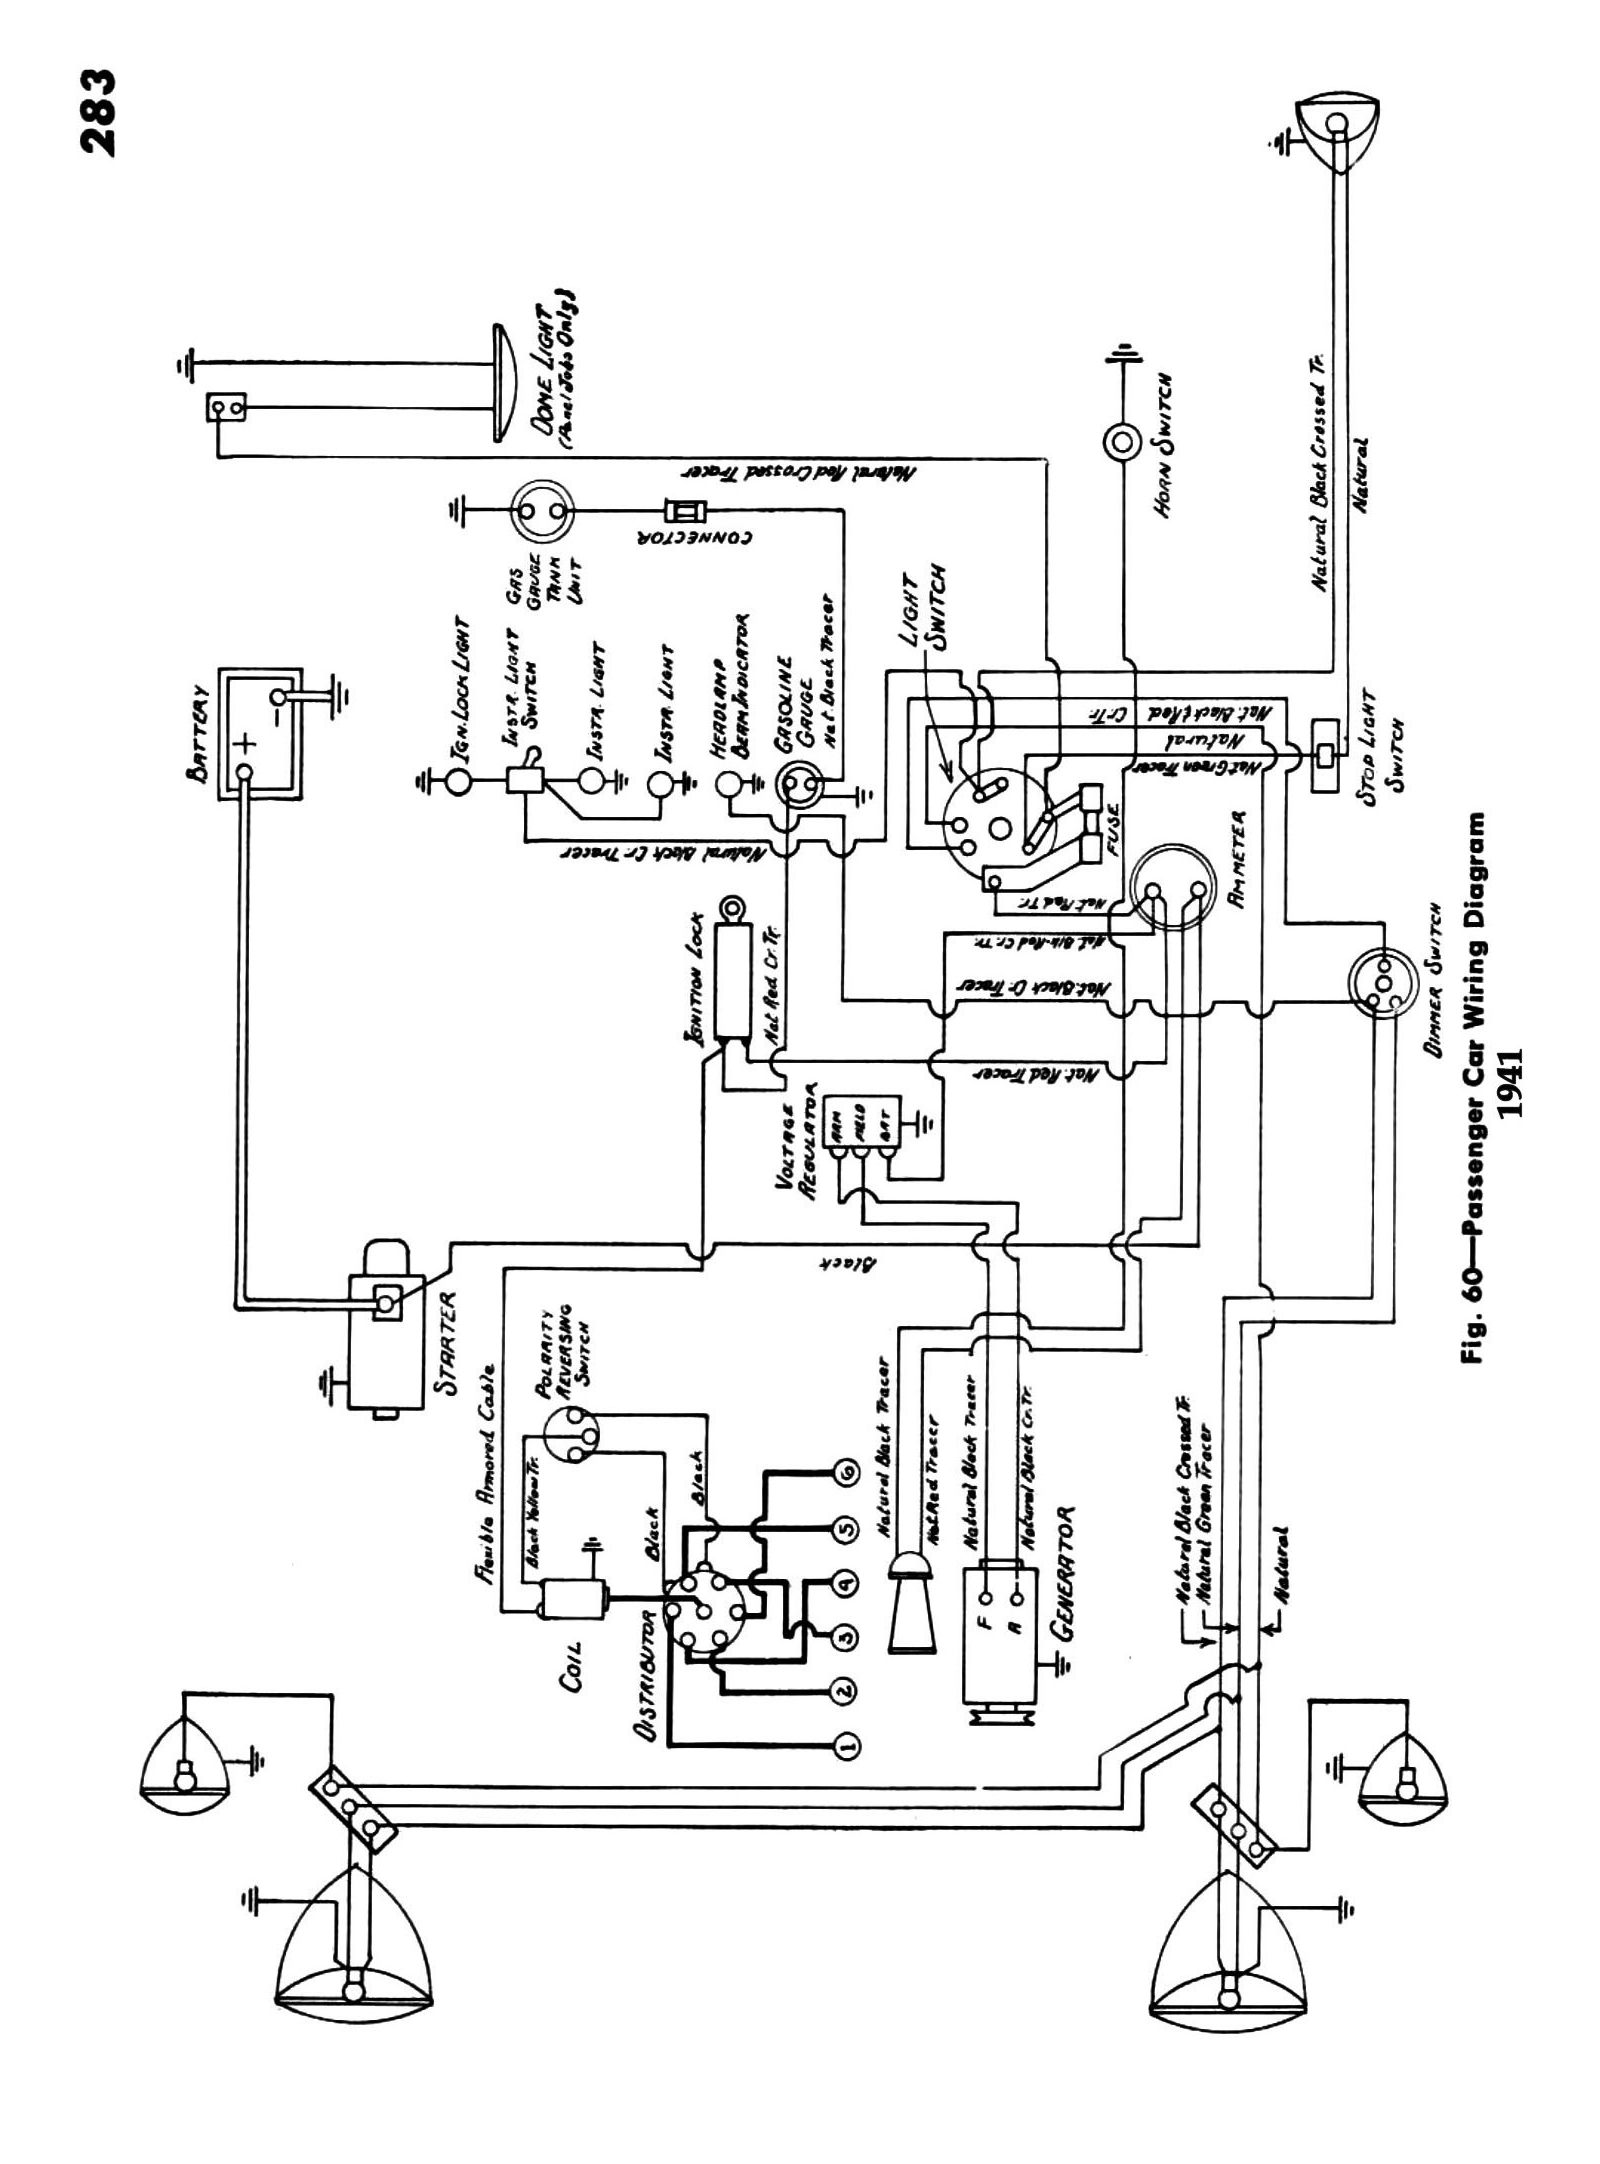 1941 Oldsmobile Wiring Diagram The Portal And Forum Of 88 Trusted Rh 20 Nl Schoenheitsbrieftaube De 1995 Diagrams 1998